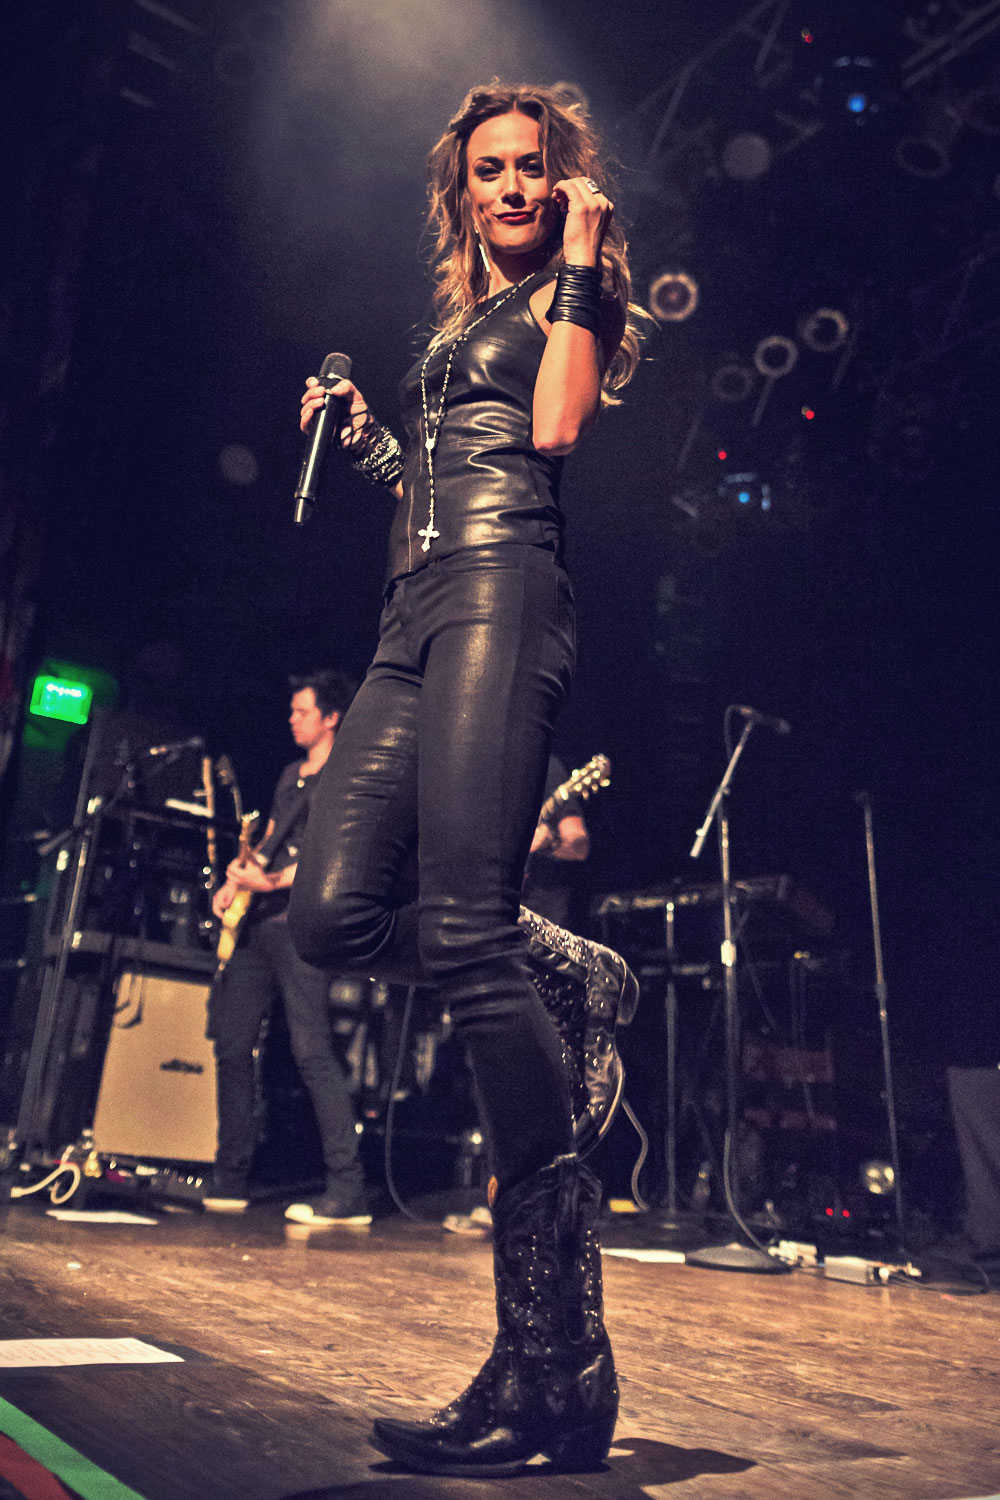 Jana Kramer performs at House Of Blues in Anaheim